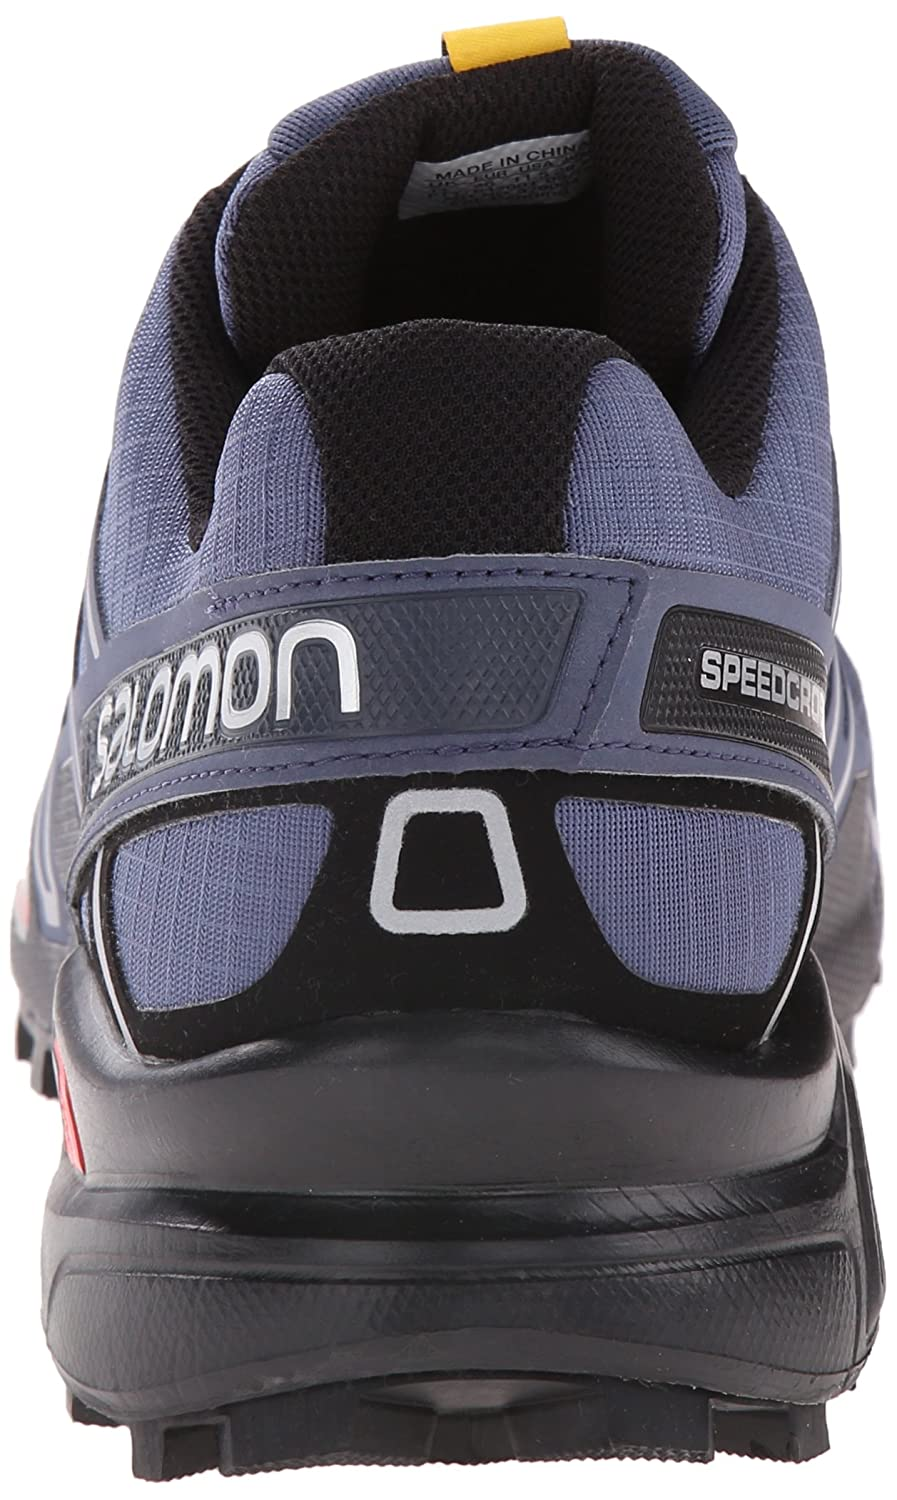 Salomon Men's Speedcross B00ZLMN30G 3 Trail Running Shoe B00ZLMN30G Speedcross 10.5 D(M) US|Slate Blue/Black/Deep Blue 8c58d5